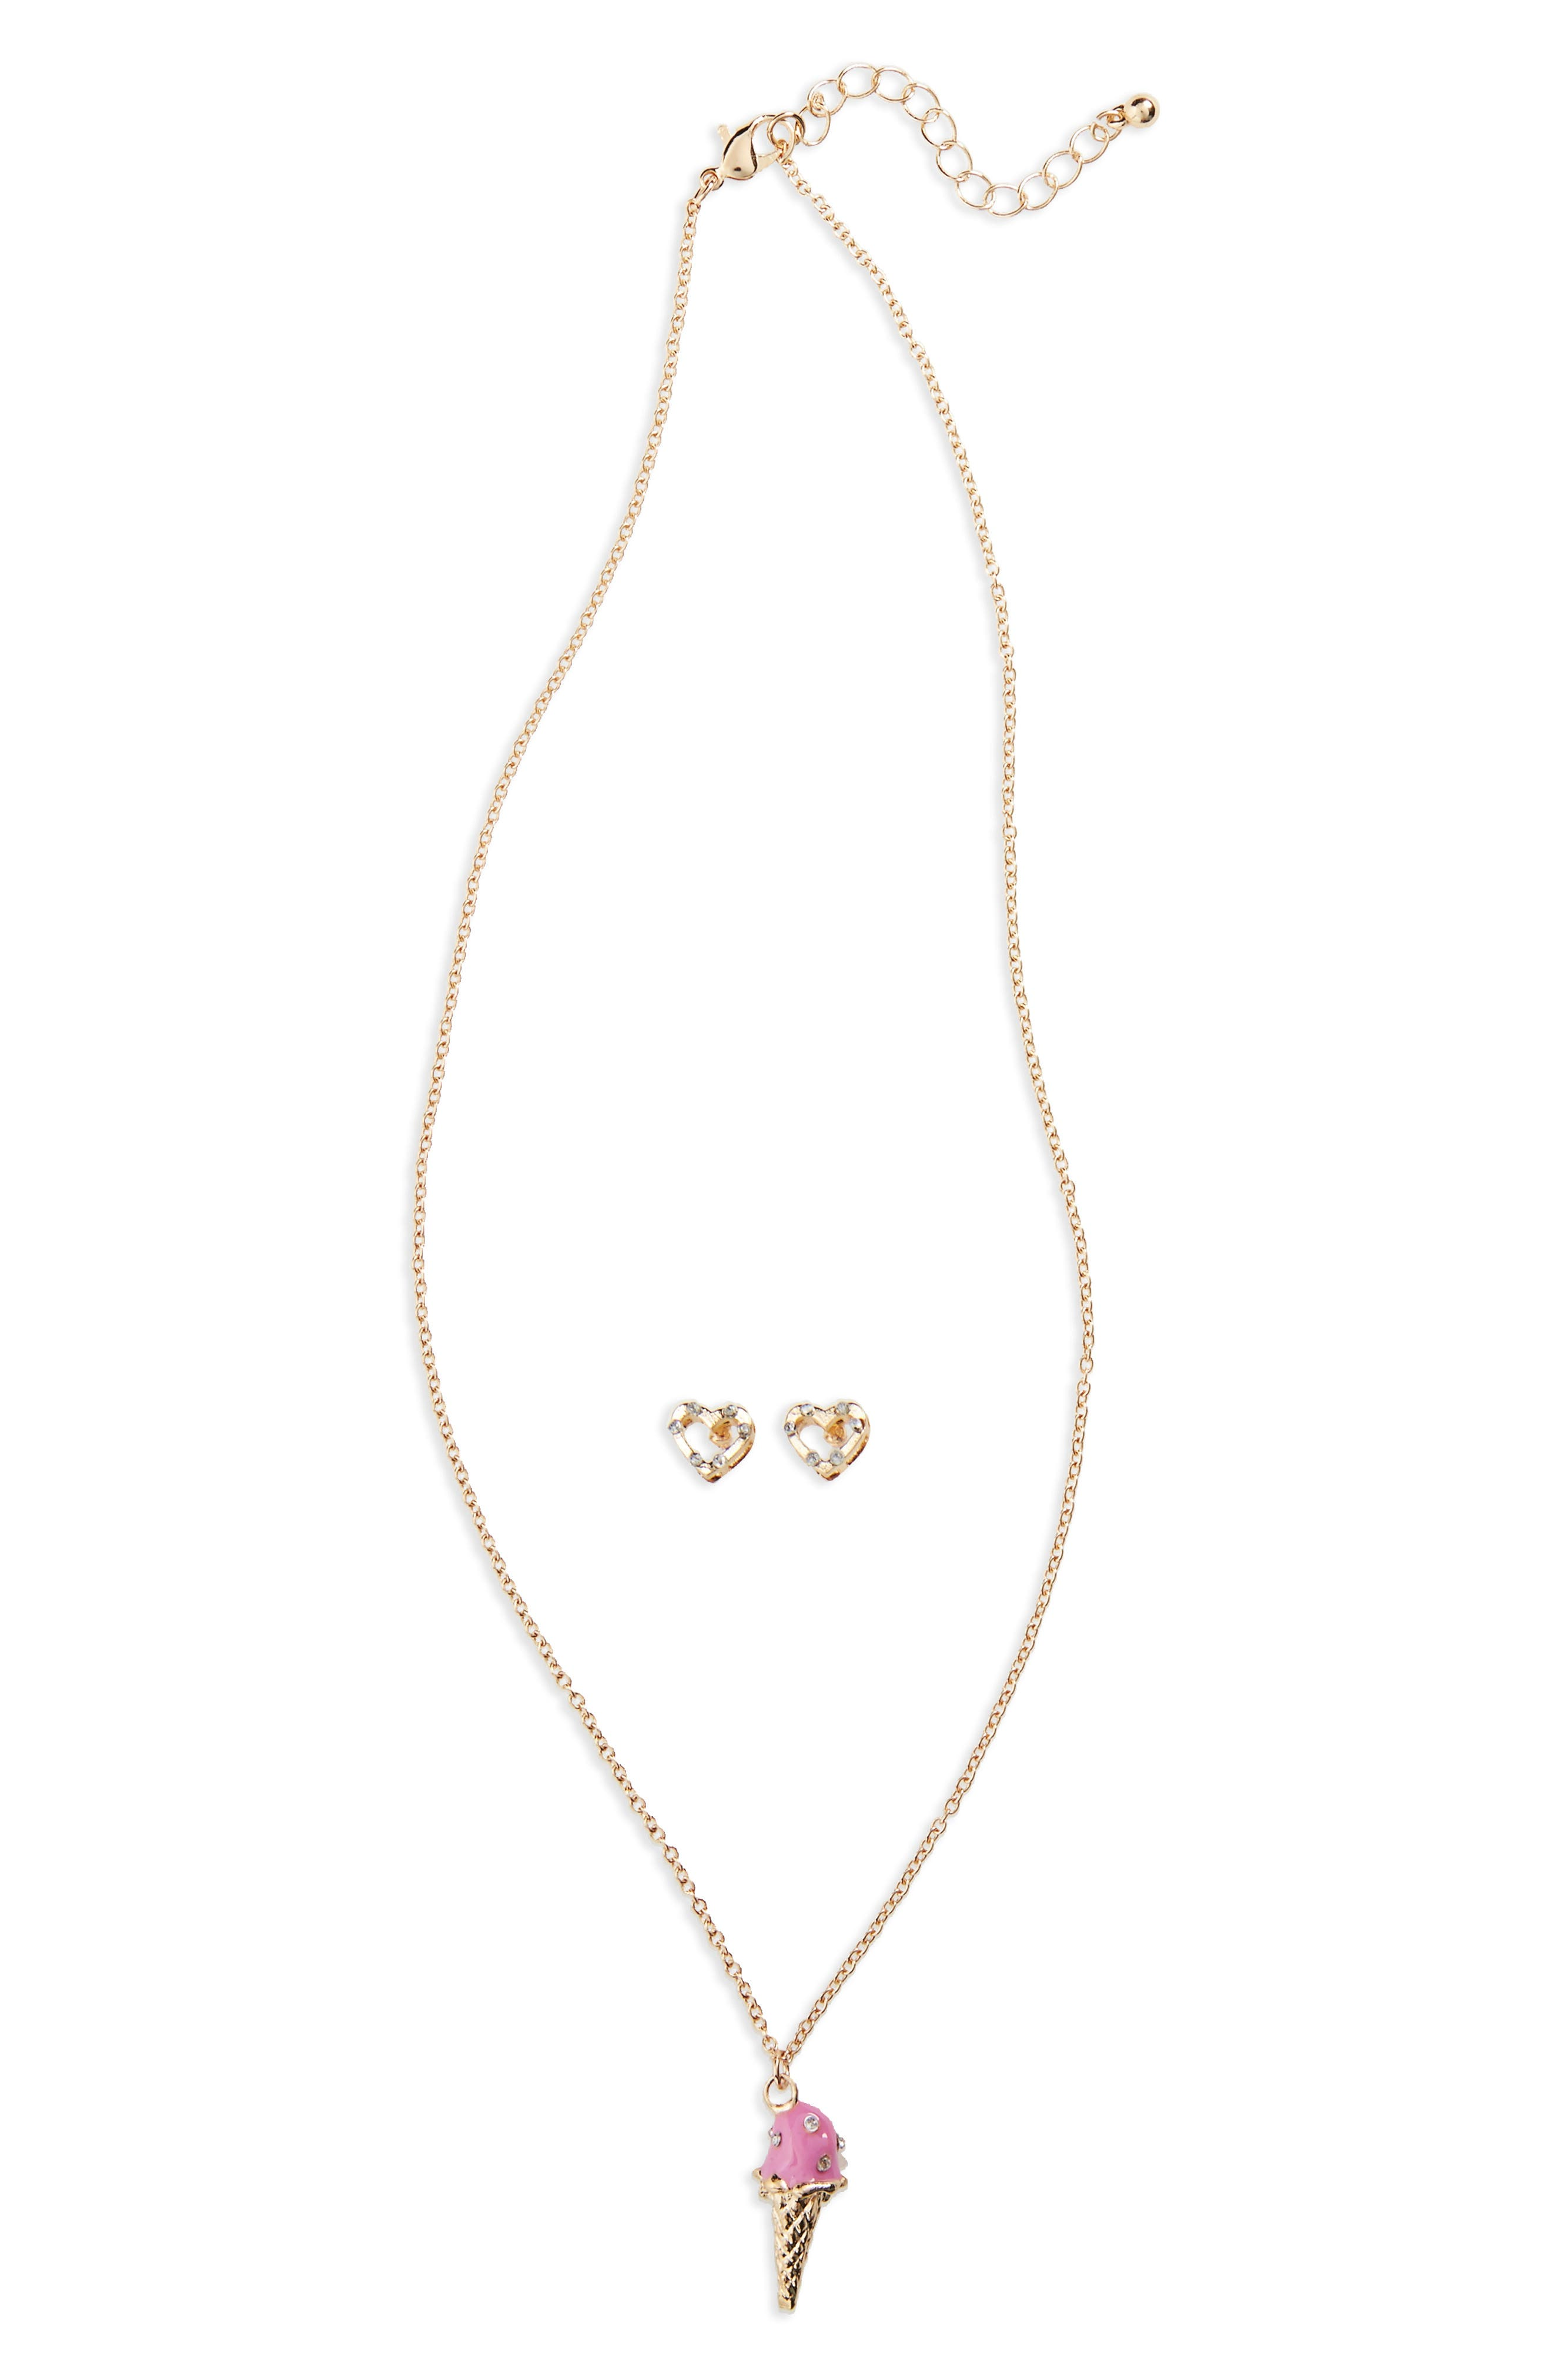 Alternate Image 1 Selected - Capelli New York Ice Cream Necklace & Heart Earrings Set (Big Girls)